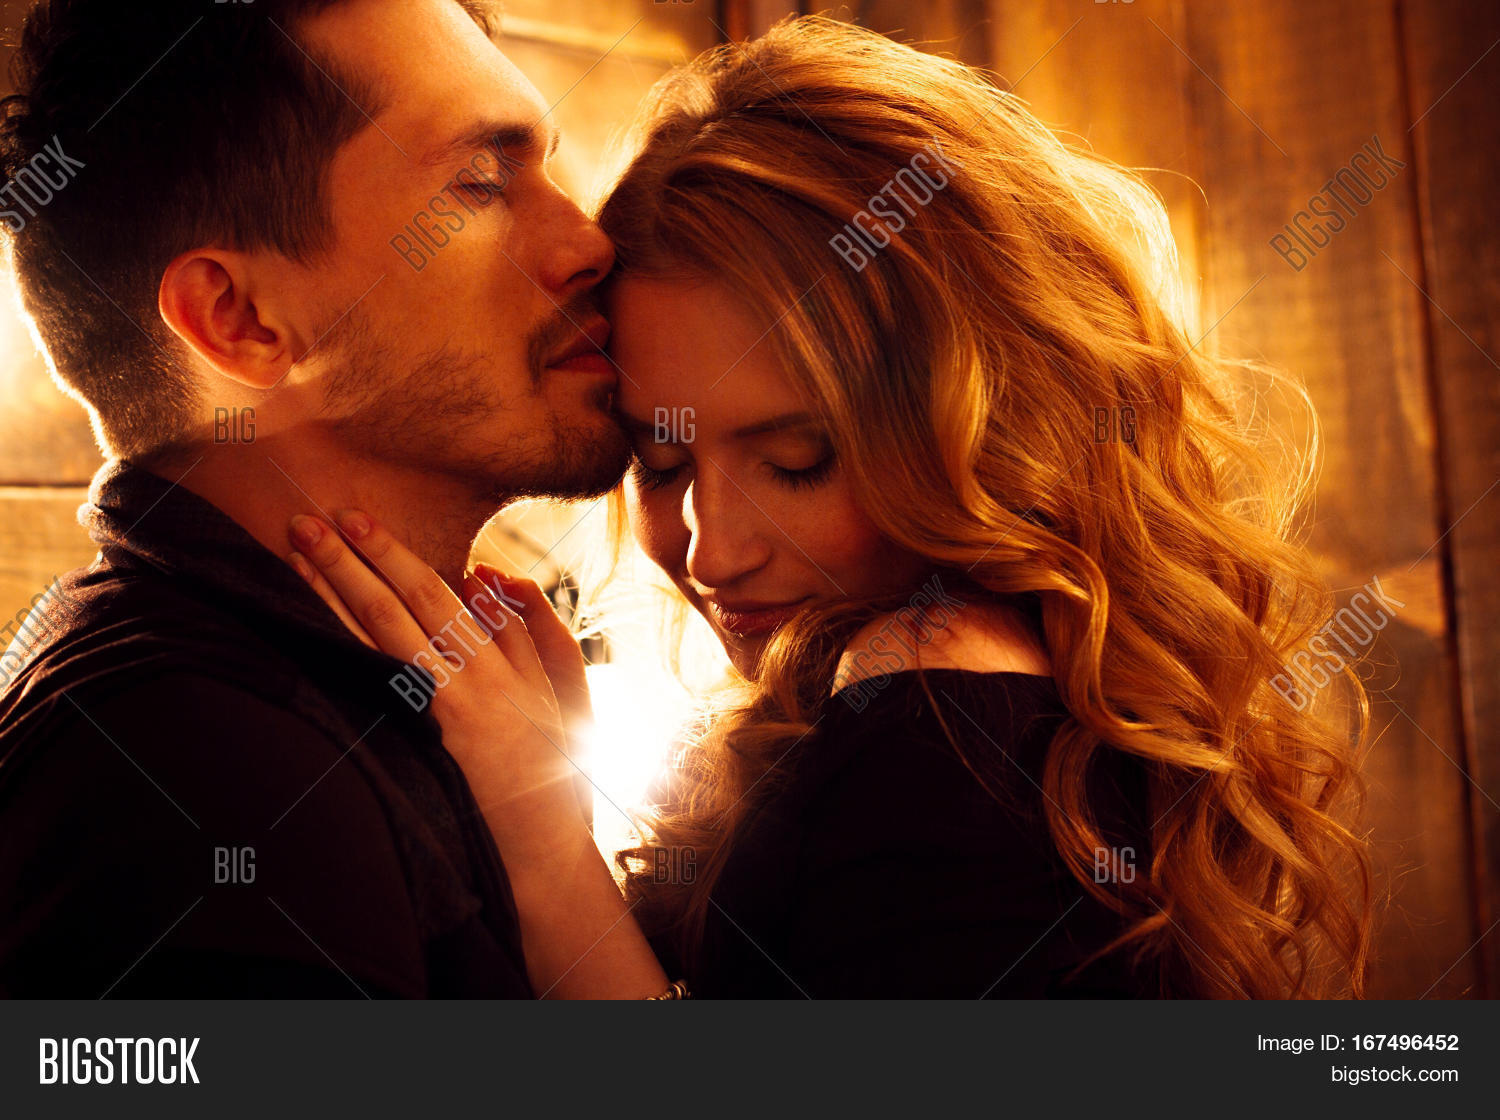 Beautiful Couple Love Image  Photo Free Trial  Bigstock-4346